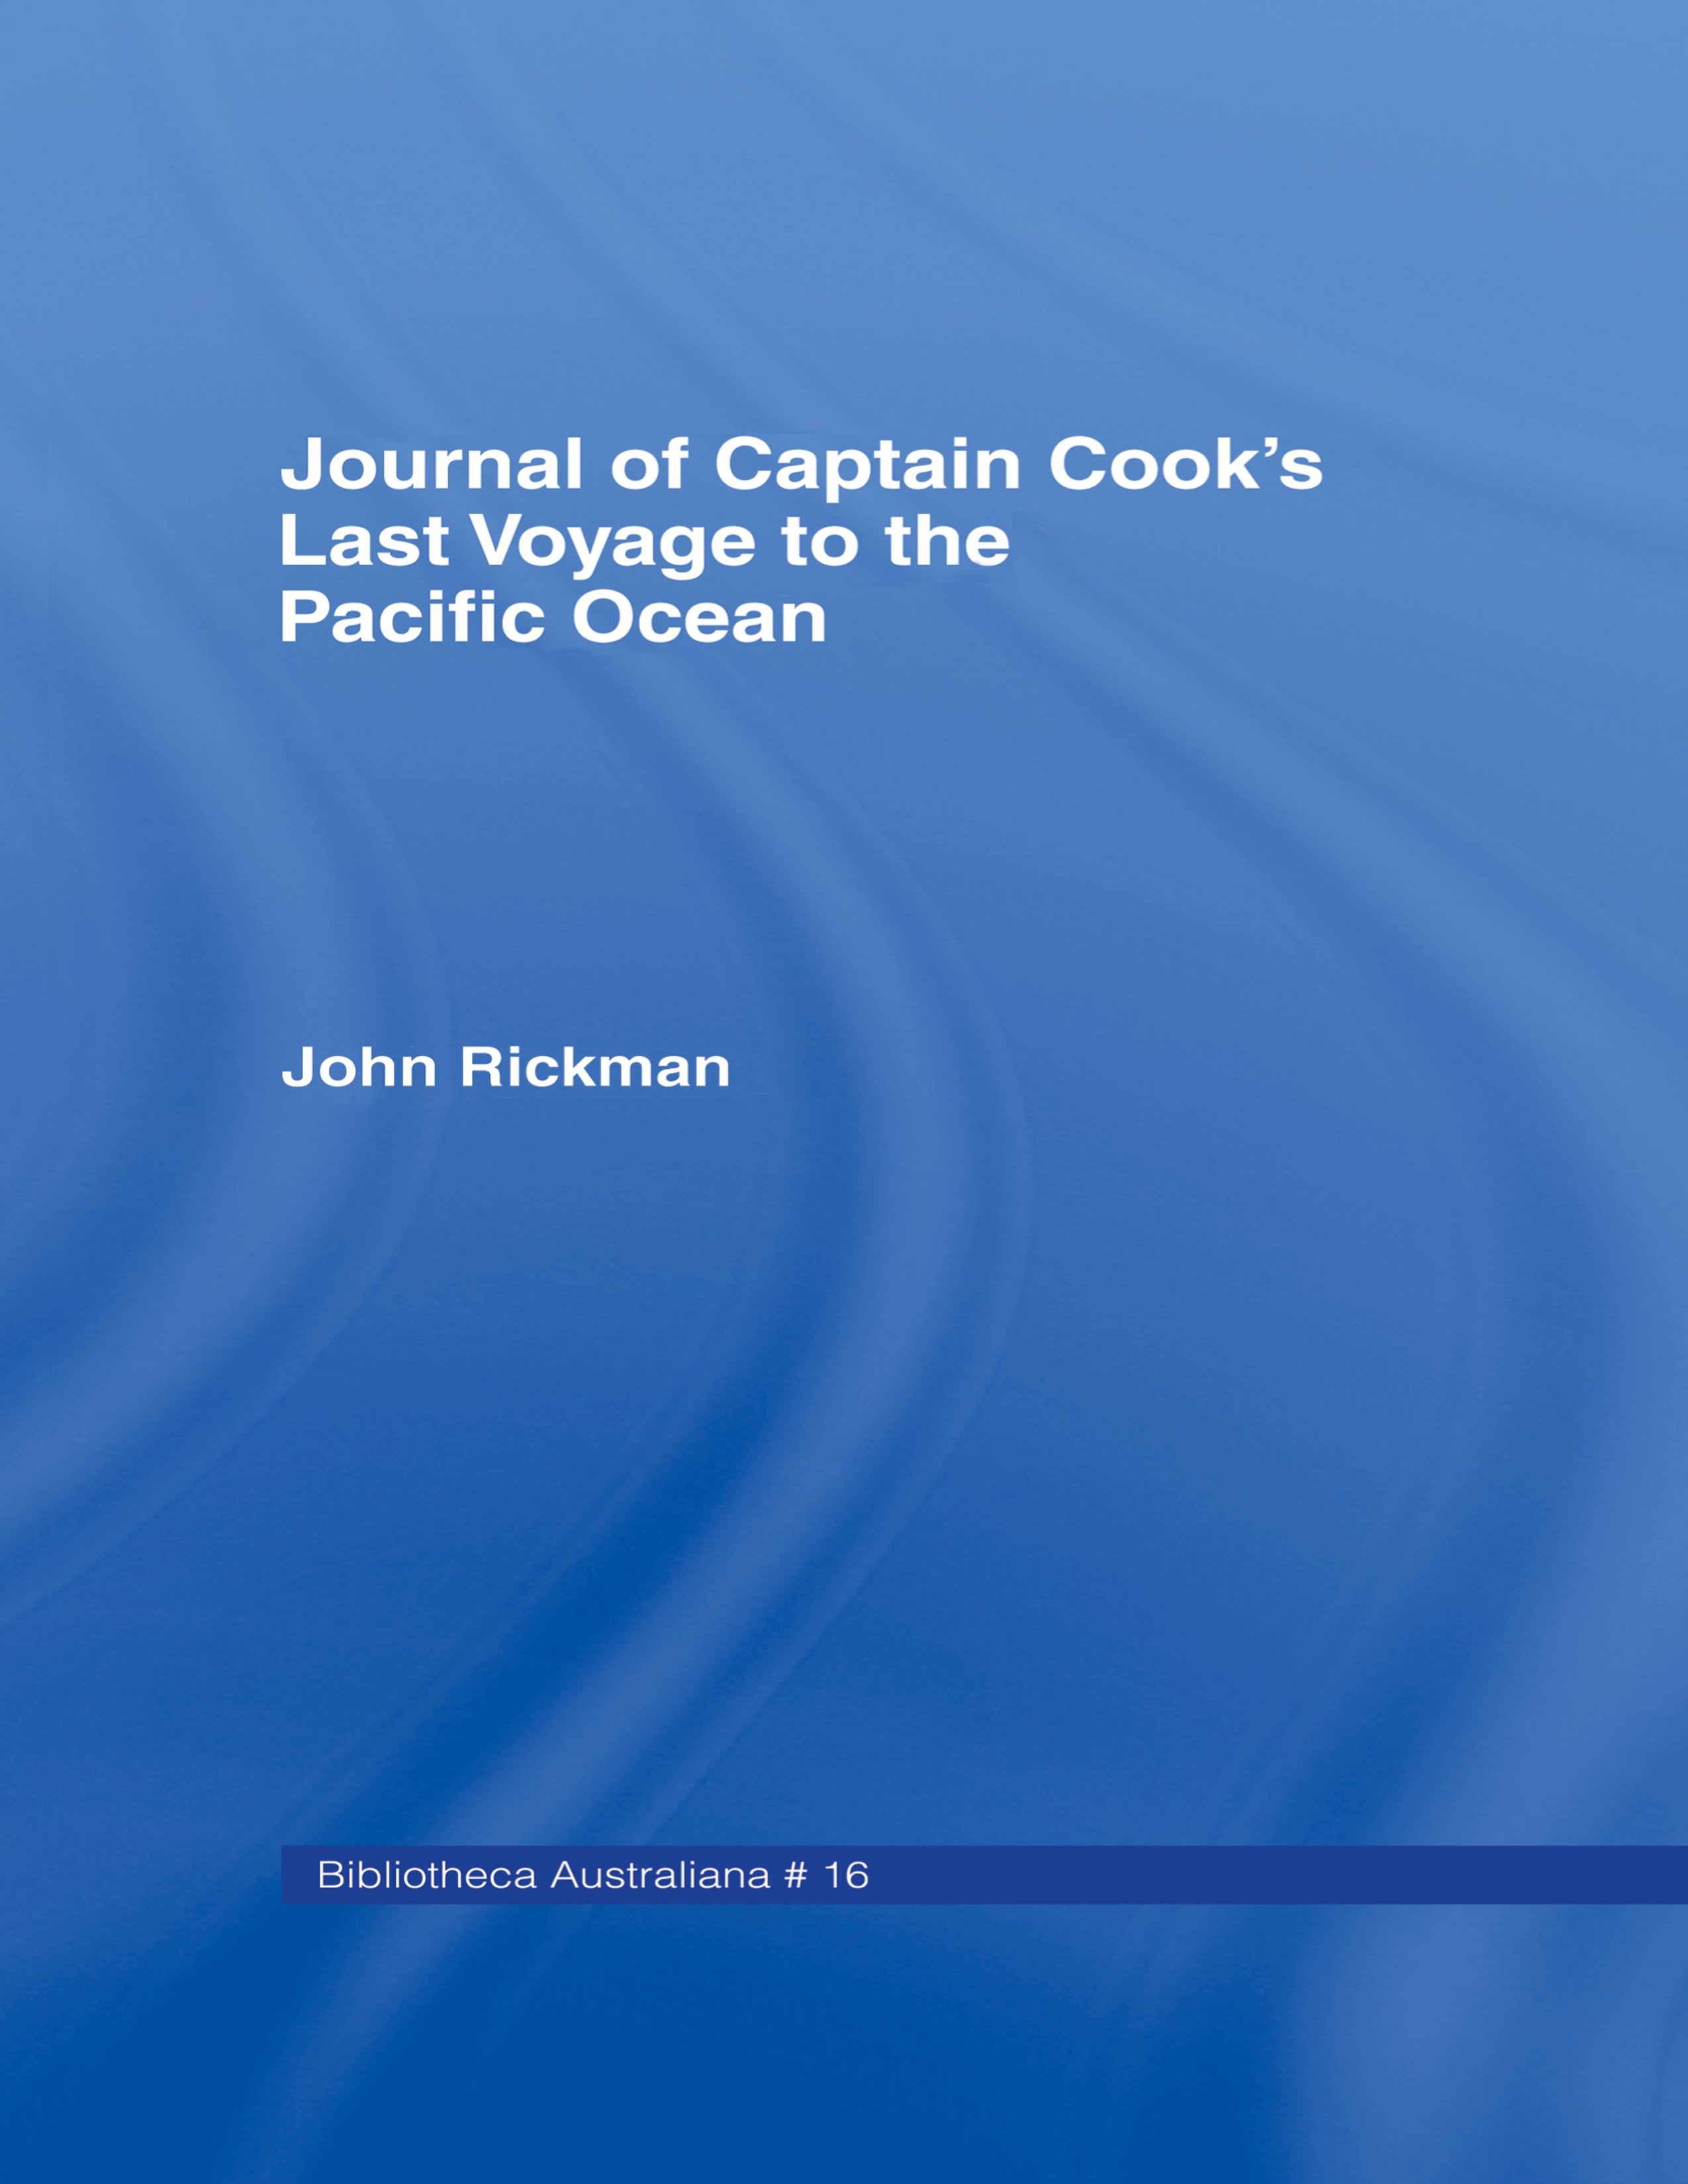 Journal of Captain Cook's Last Voyage book cover